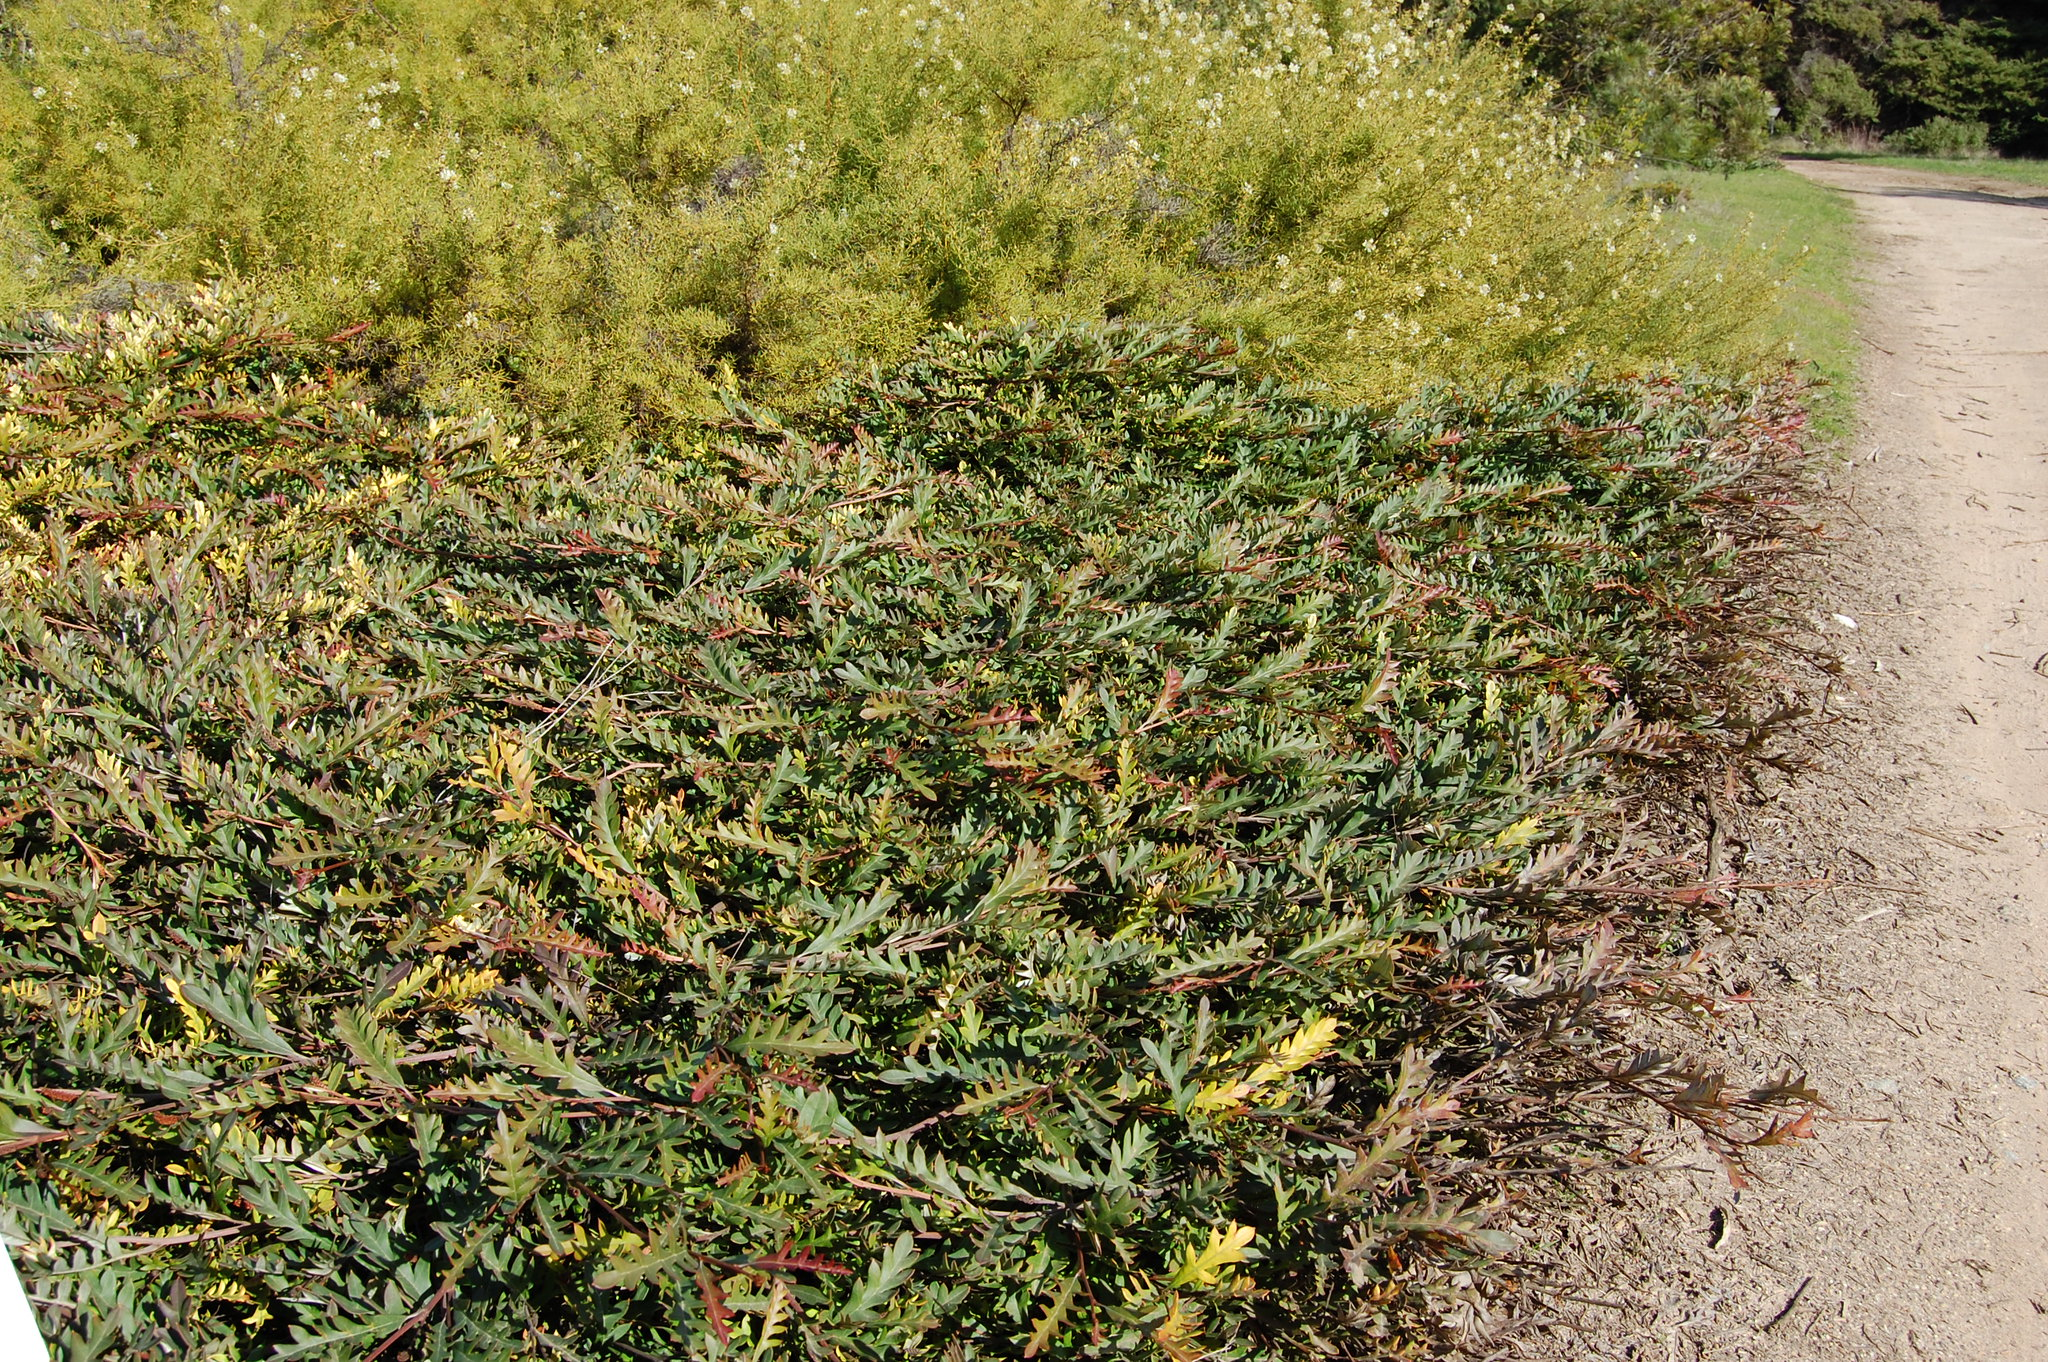 Groundcover plant